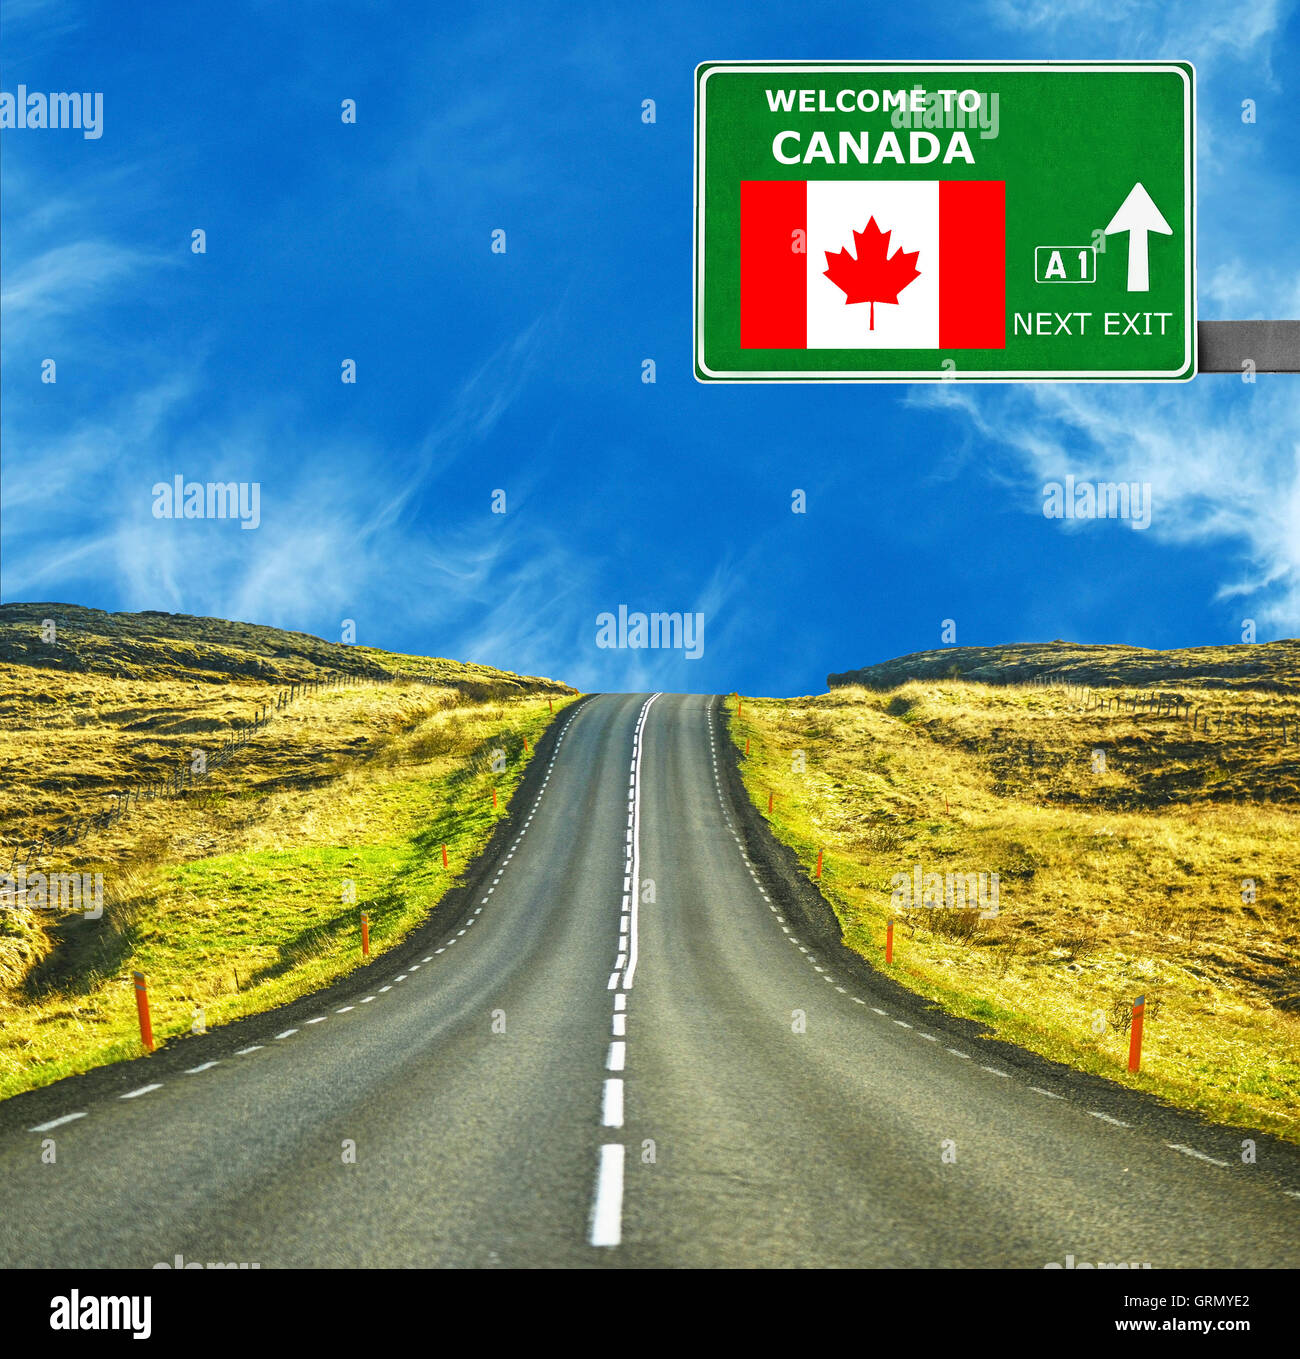 08b1a28a74e9a Canada road sign against clear blue sky Stock Photo: 117859898 - Alamy